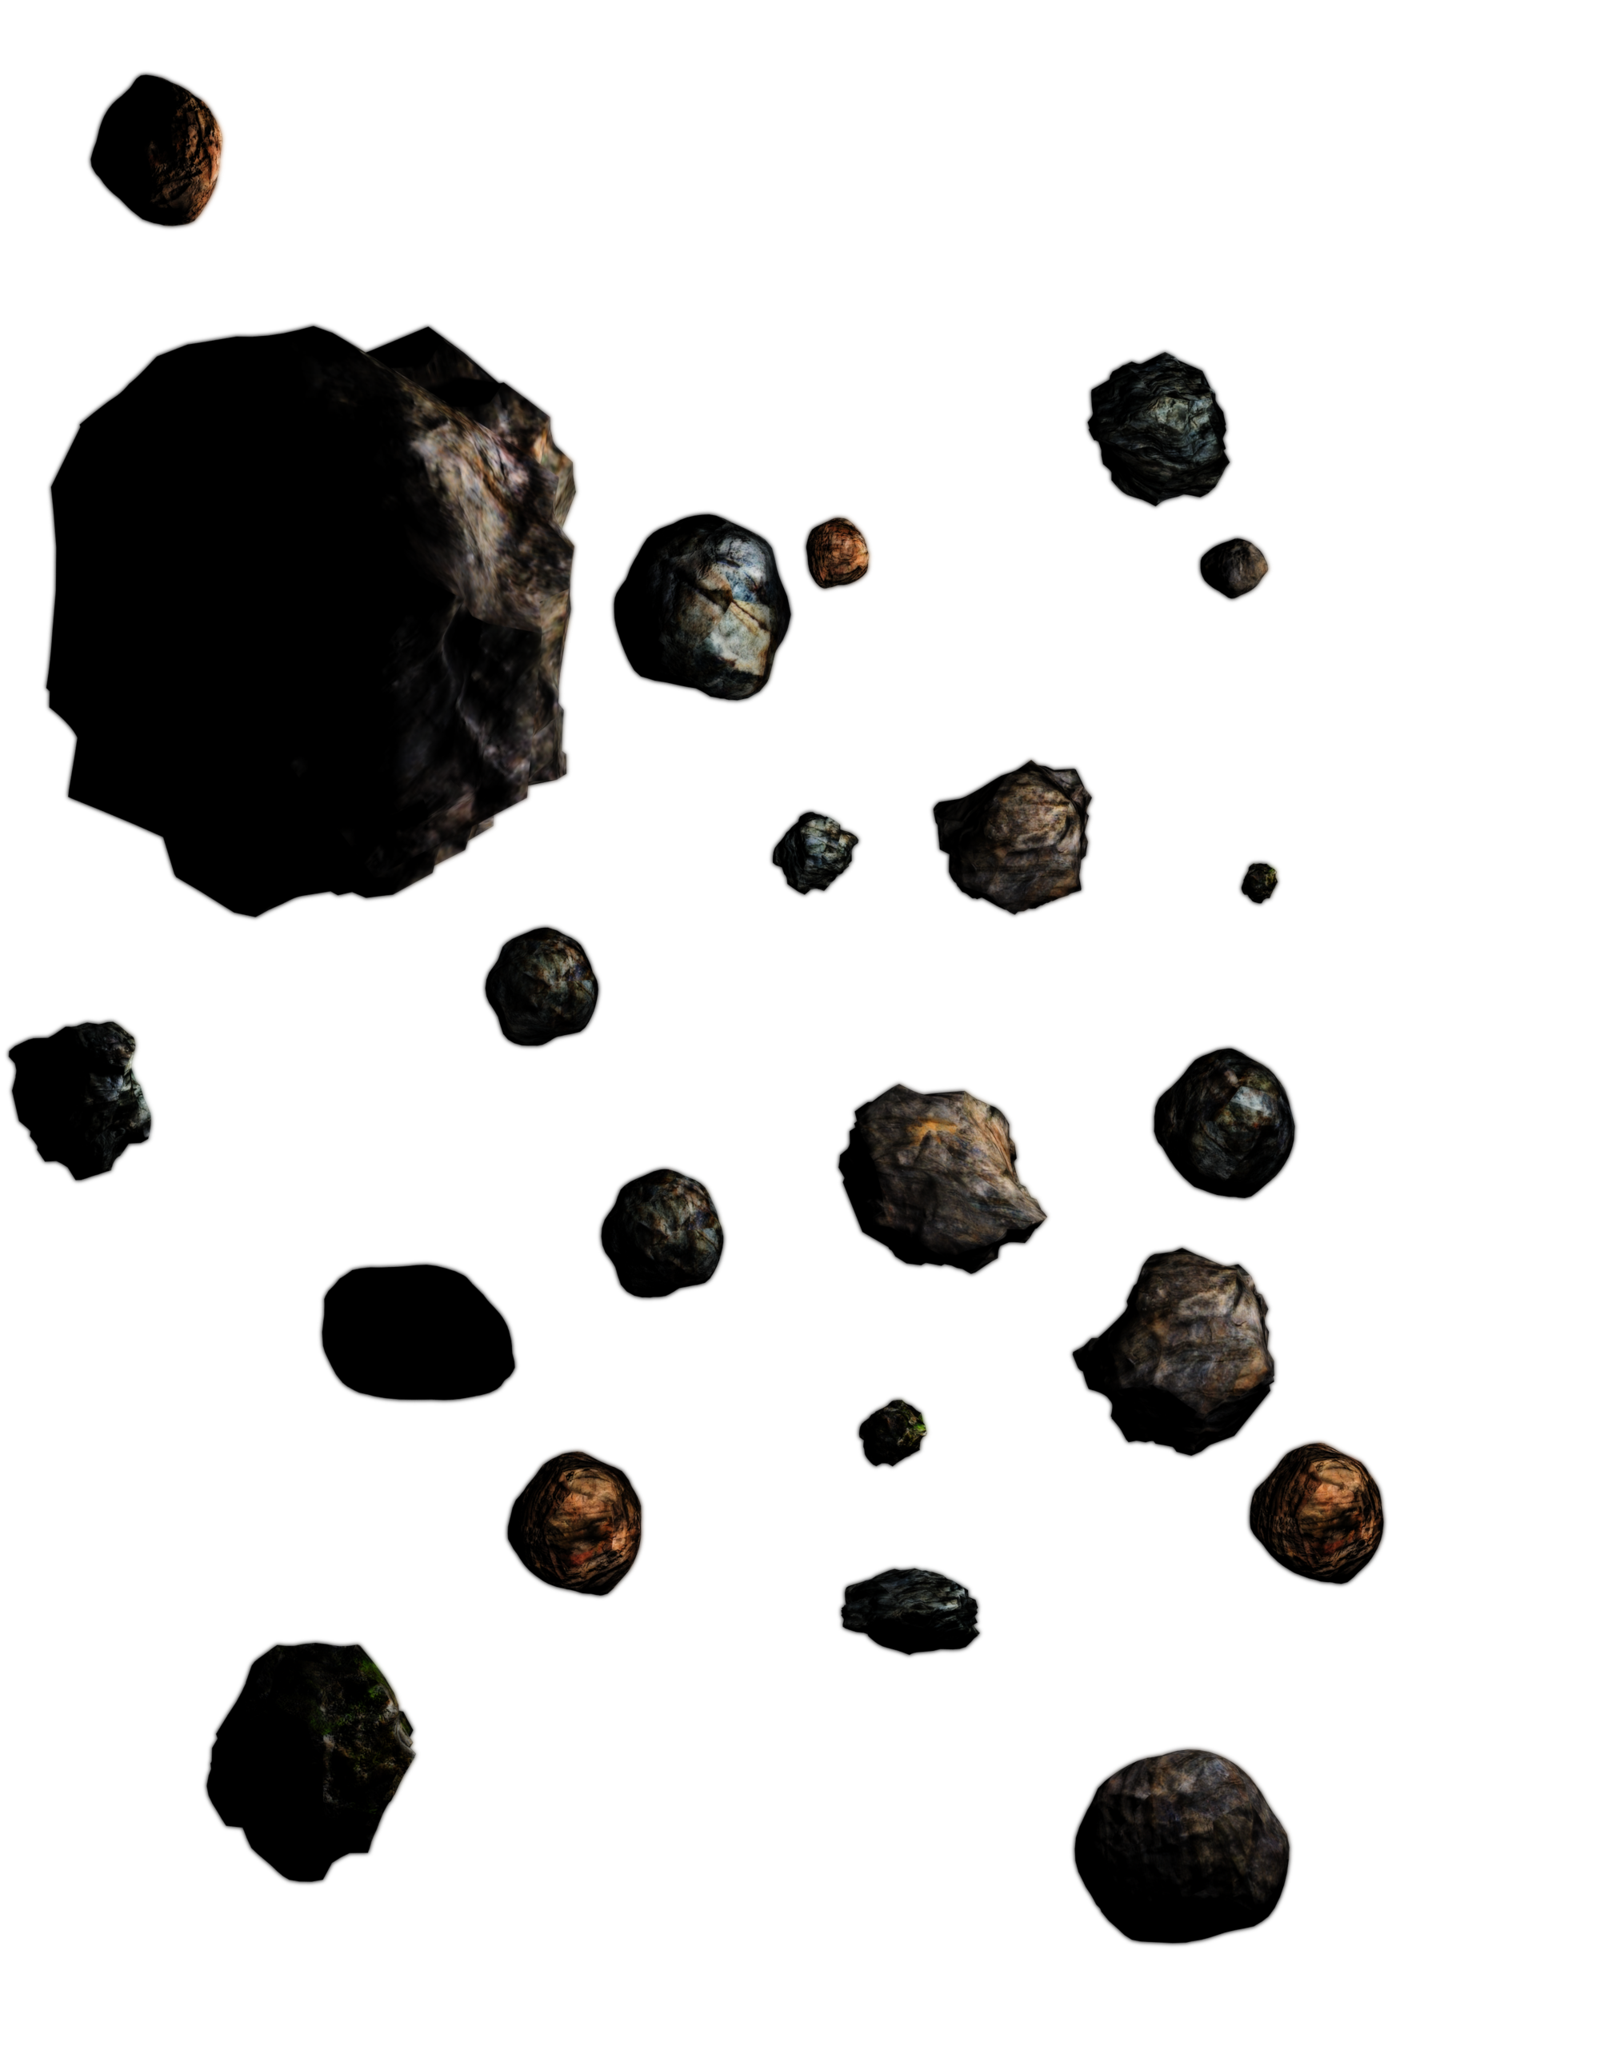 Asteroid clipart transparent background. Png mart